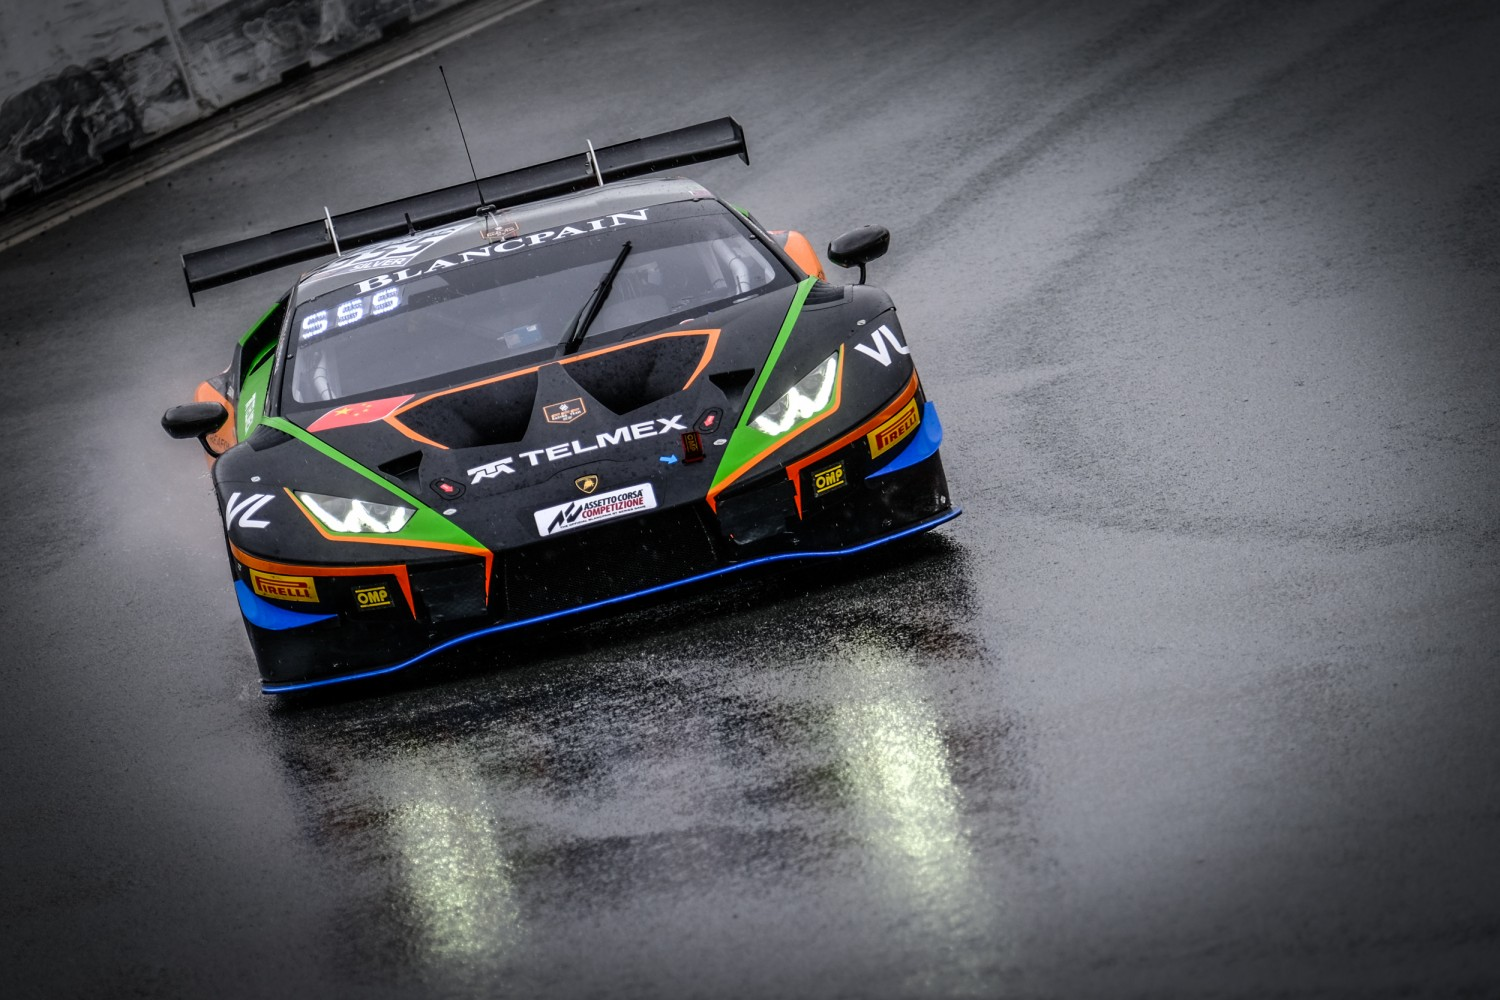 #555 Orange 1 FFF Racing Team CHN Lamborghini Huracan GT3 2019 Taylor Proto GBR Diego Menchaca MEX Silver Cup, Free Practice 2  | SRO / Dirk Bogaerts Photography